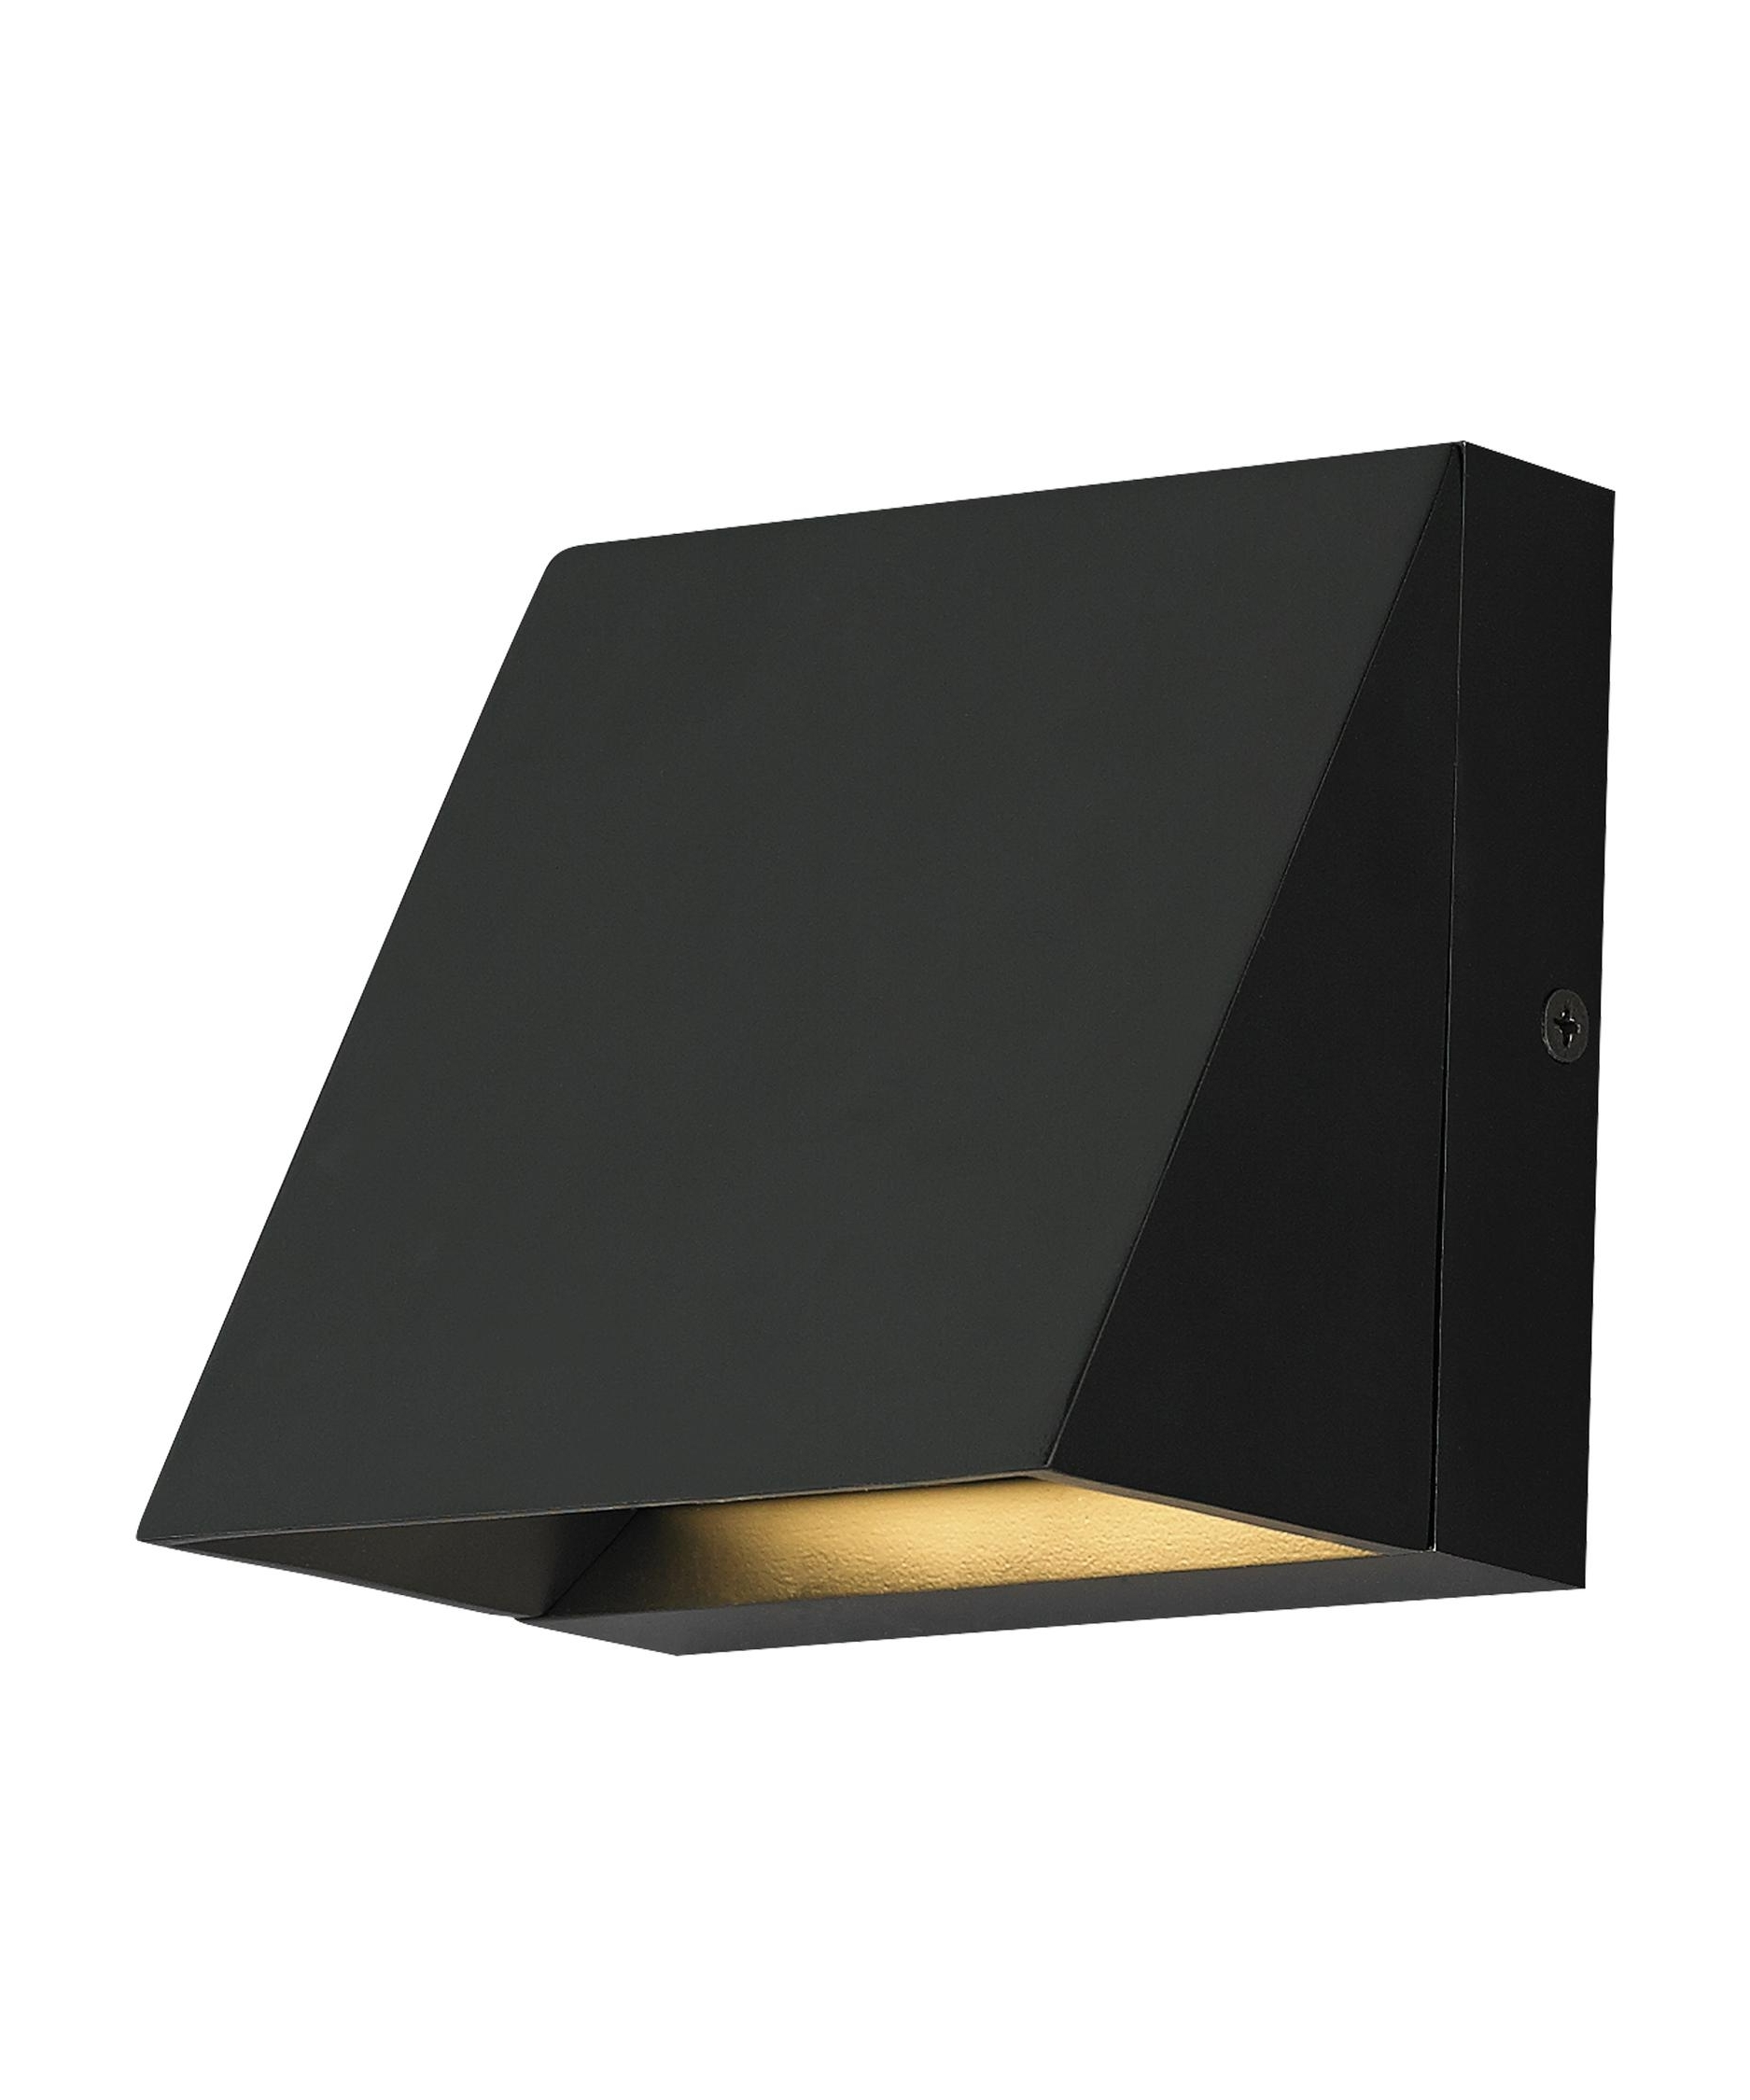 Newest Commercial Outdoor Wall Lighting Inside Tech Lighting 700wspits Pitch 5 Inch Wide 1 Light Outdoor Wall Light (View 11 of 20)